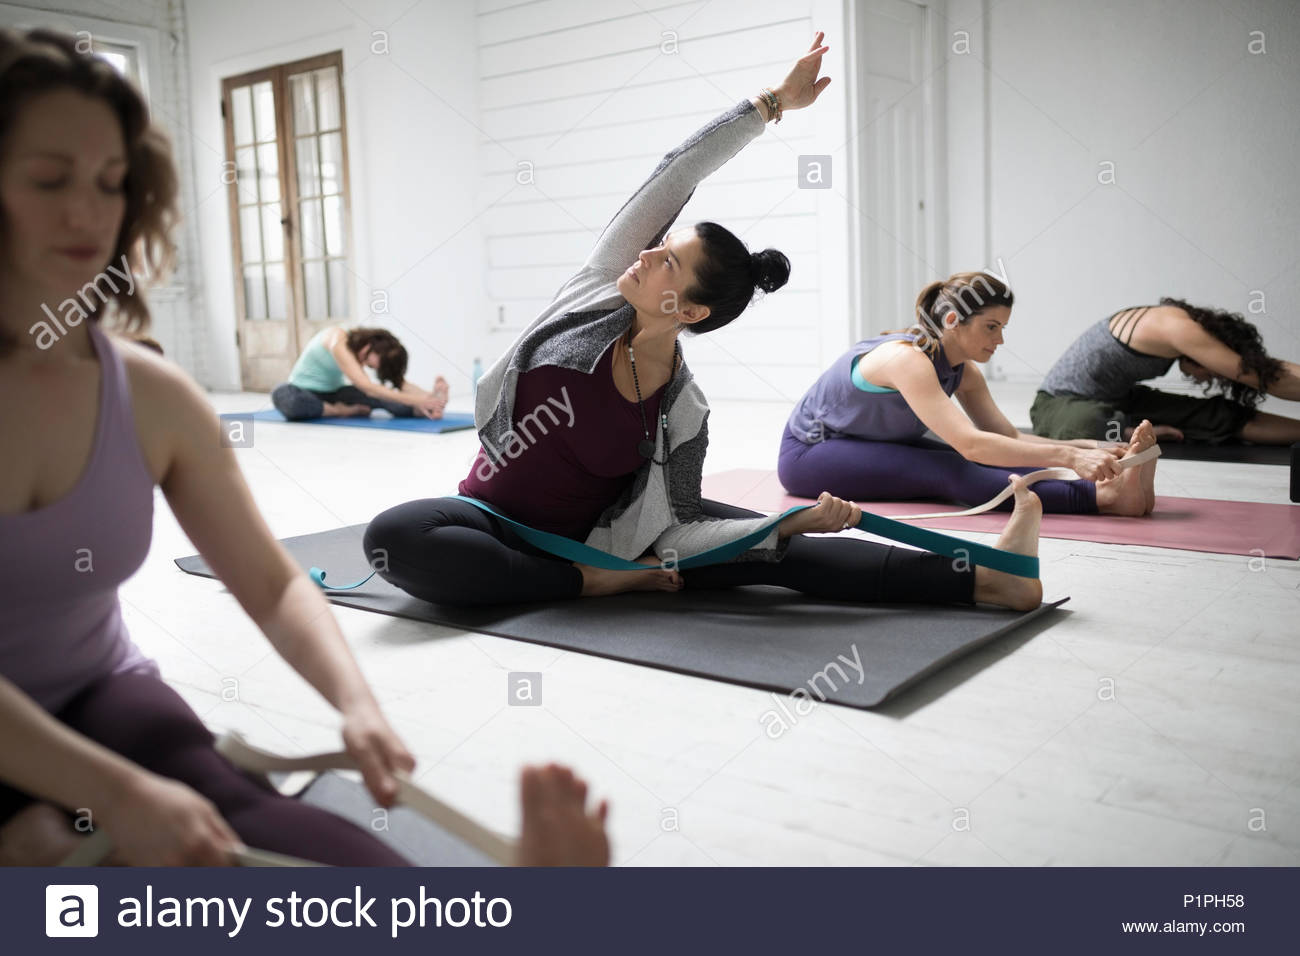 Woman practicing yoga side bend stretch with strap in yoga class - Stock Image